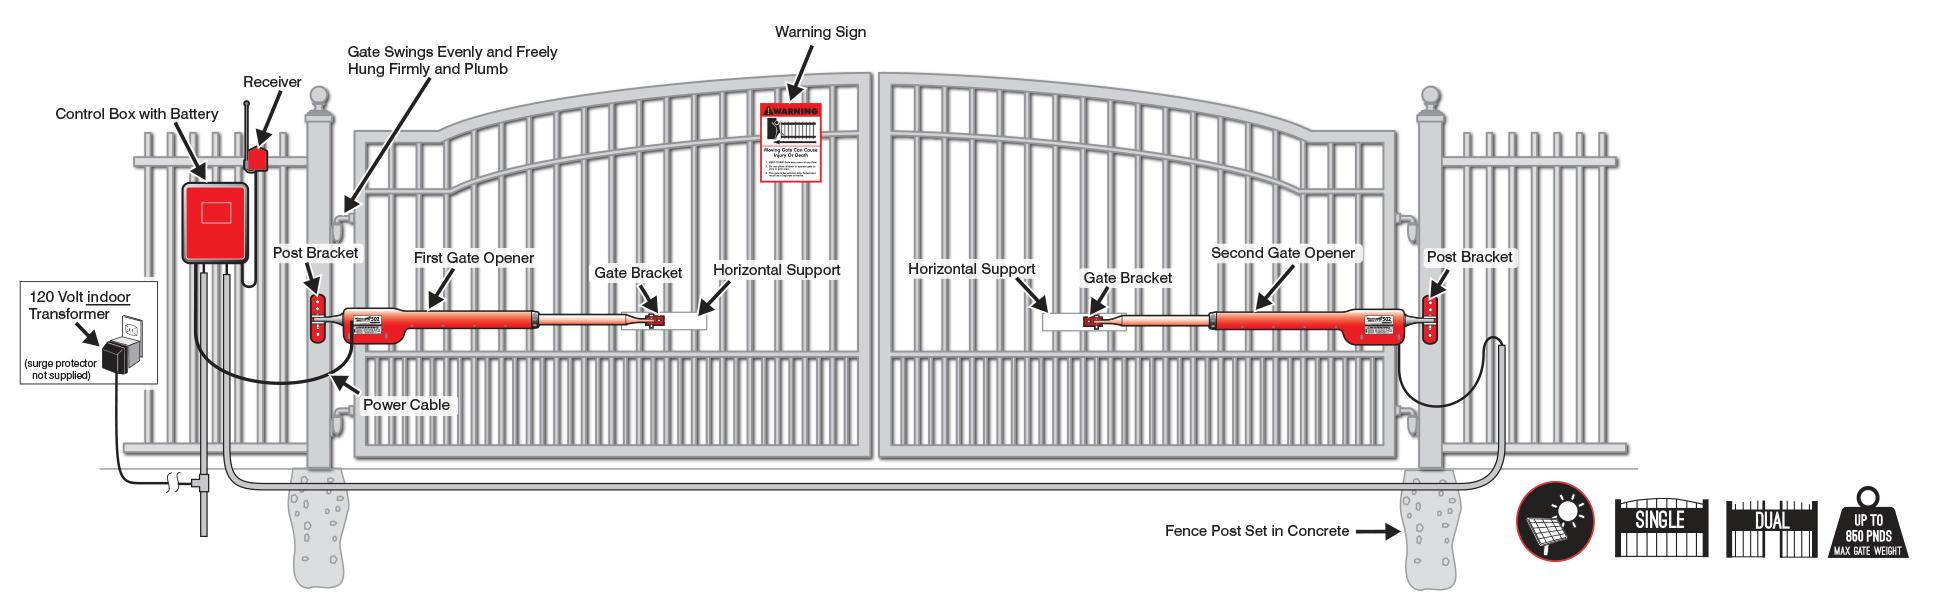 Aleko gate opener wiring diagram 28 powermaster circuit diagram swing gate wiring diagram double switch wiring diagram automatic gates manuals cheapraybanclubmaster Choice Image